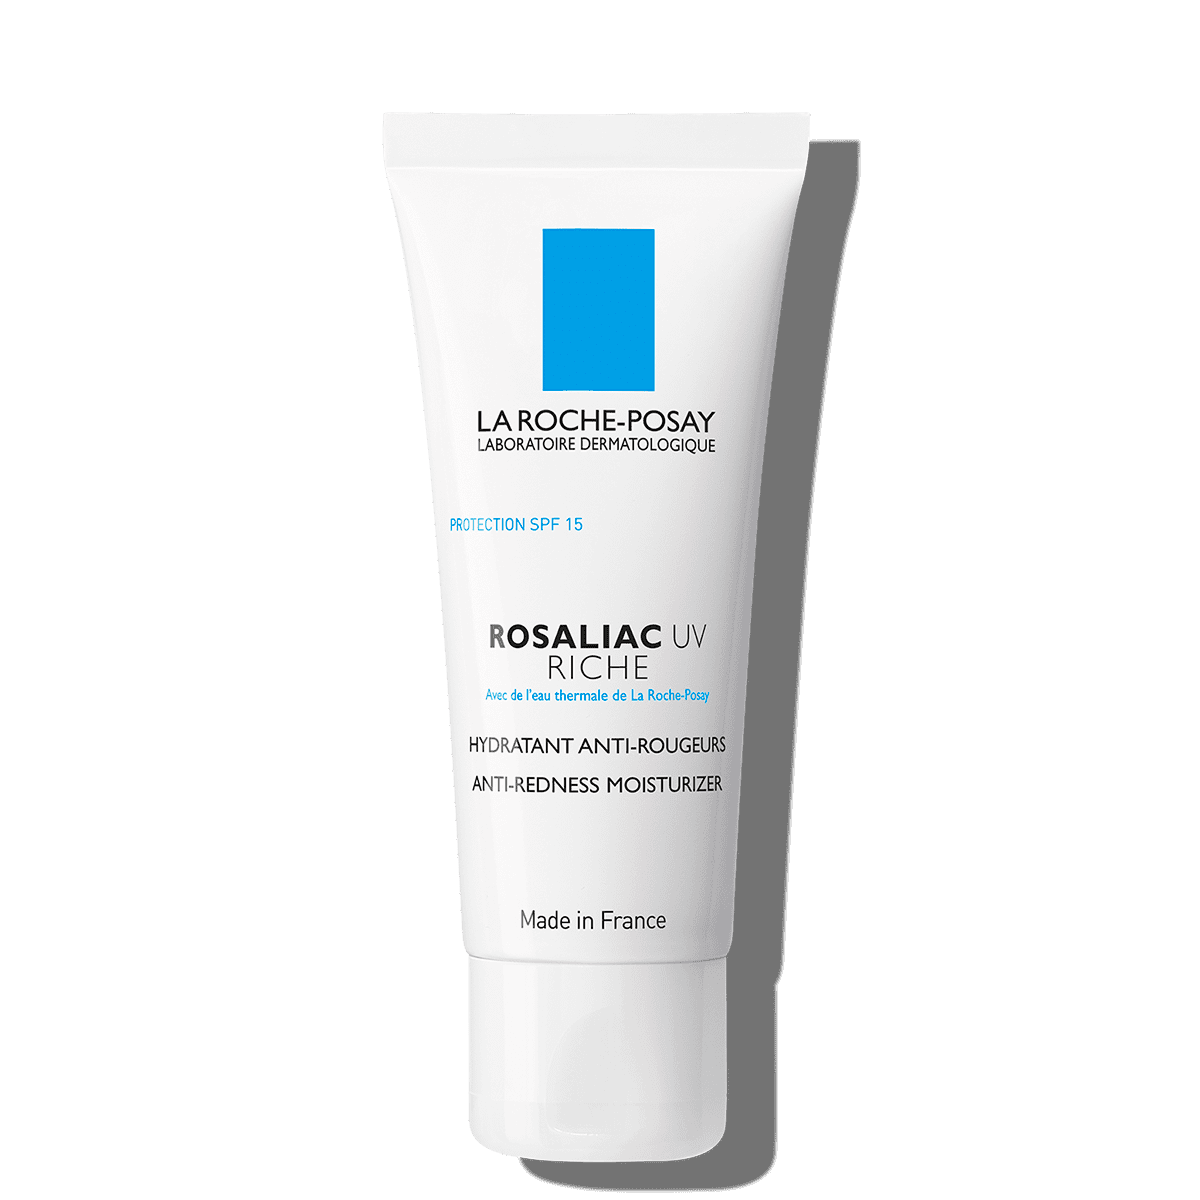 La Roche Posay ProductPage Face Care Rosaliac UV Rich Spf15 40ml 33378